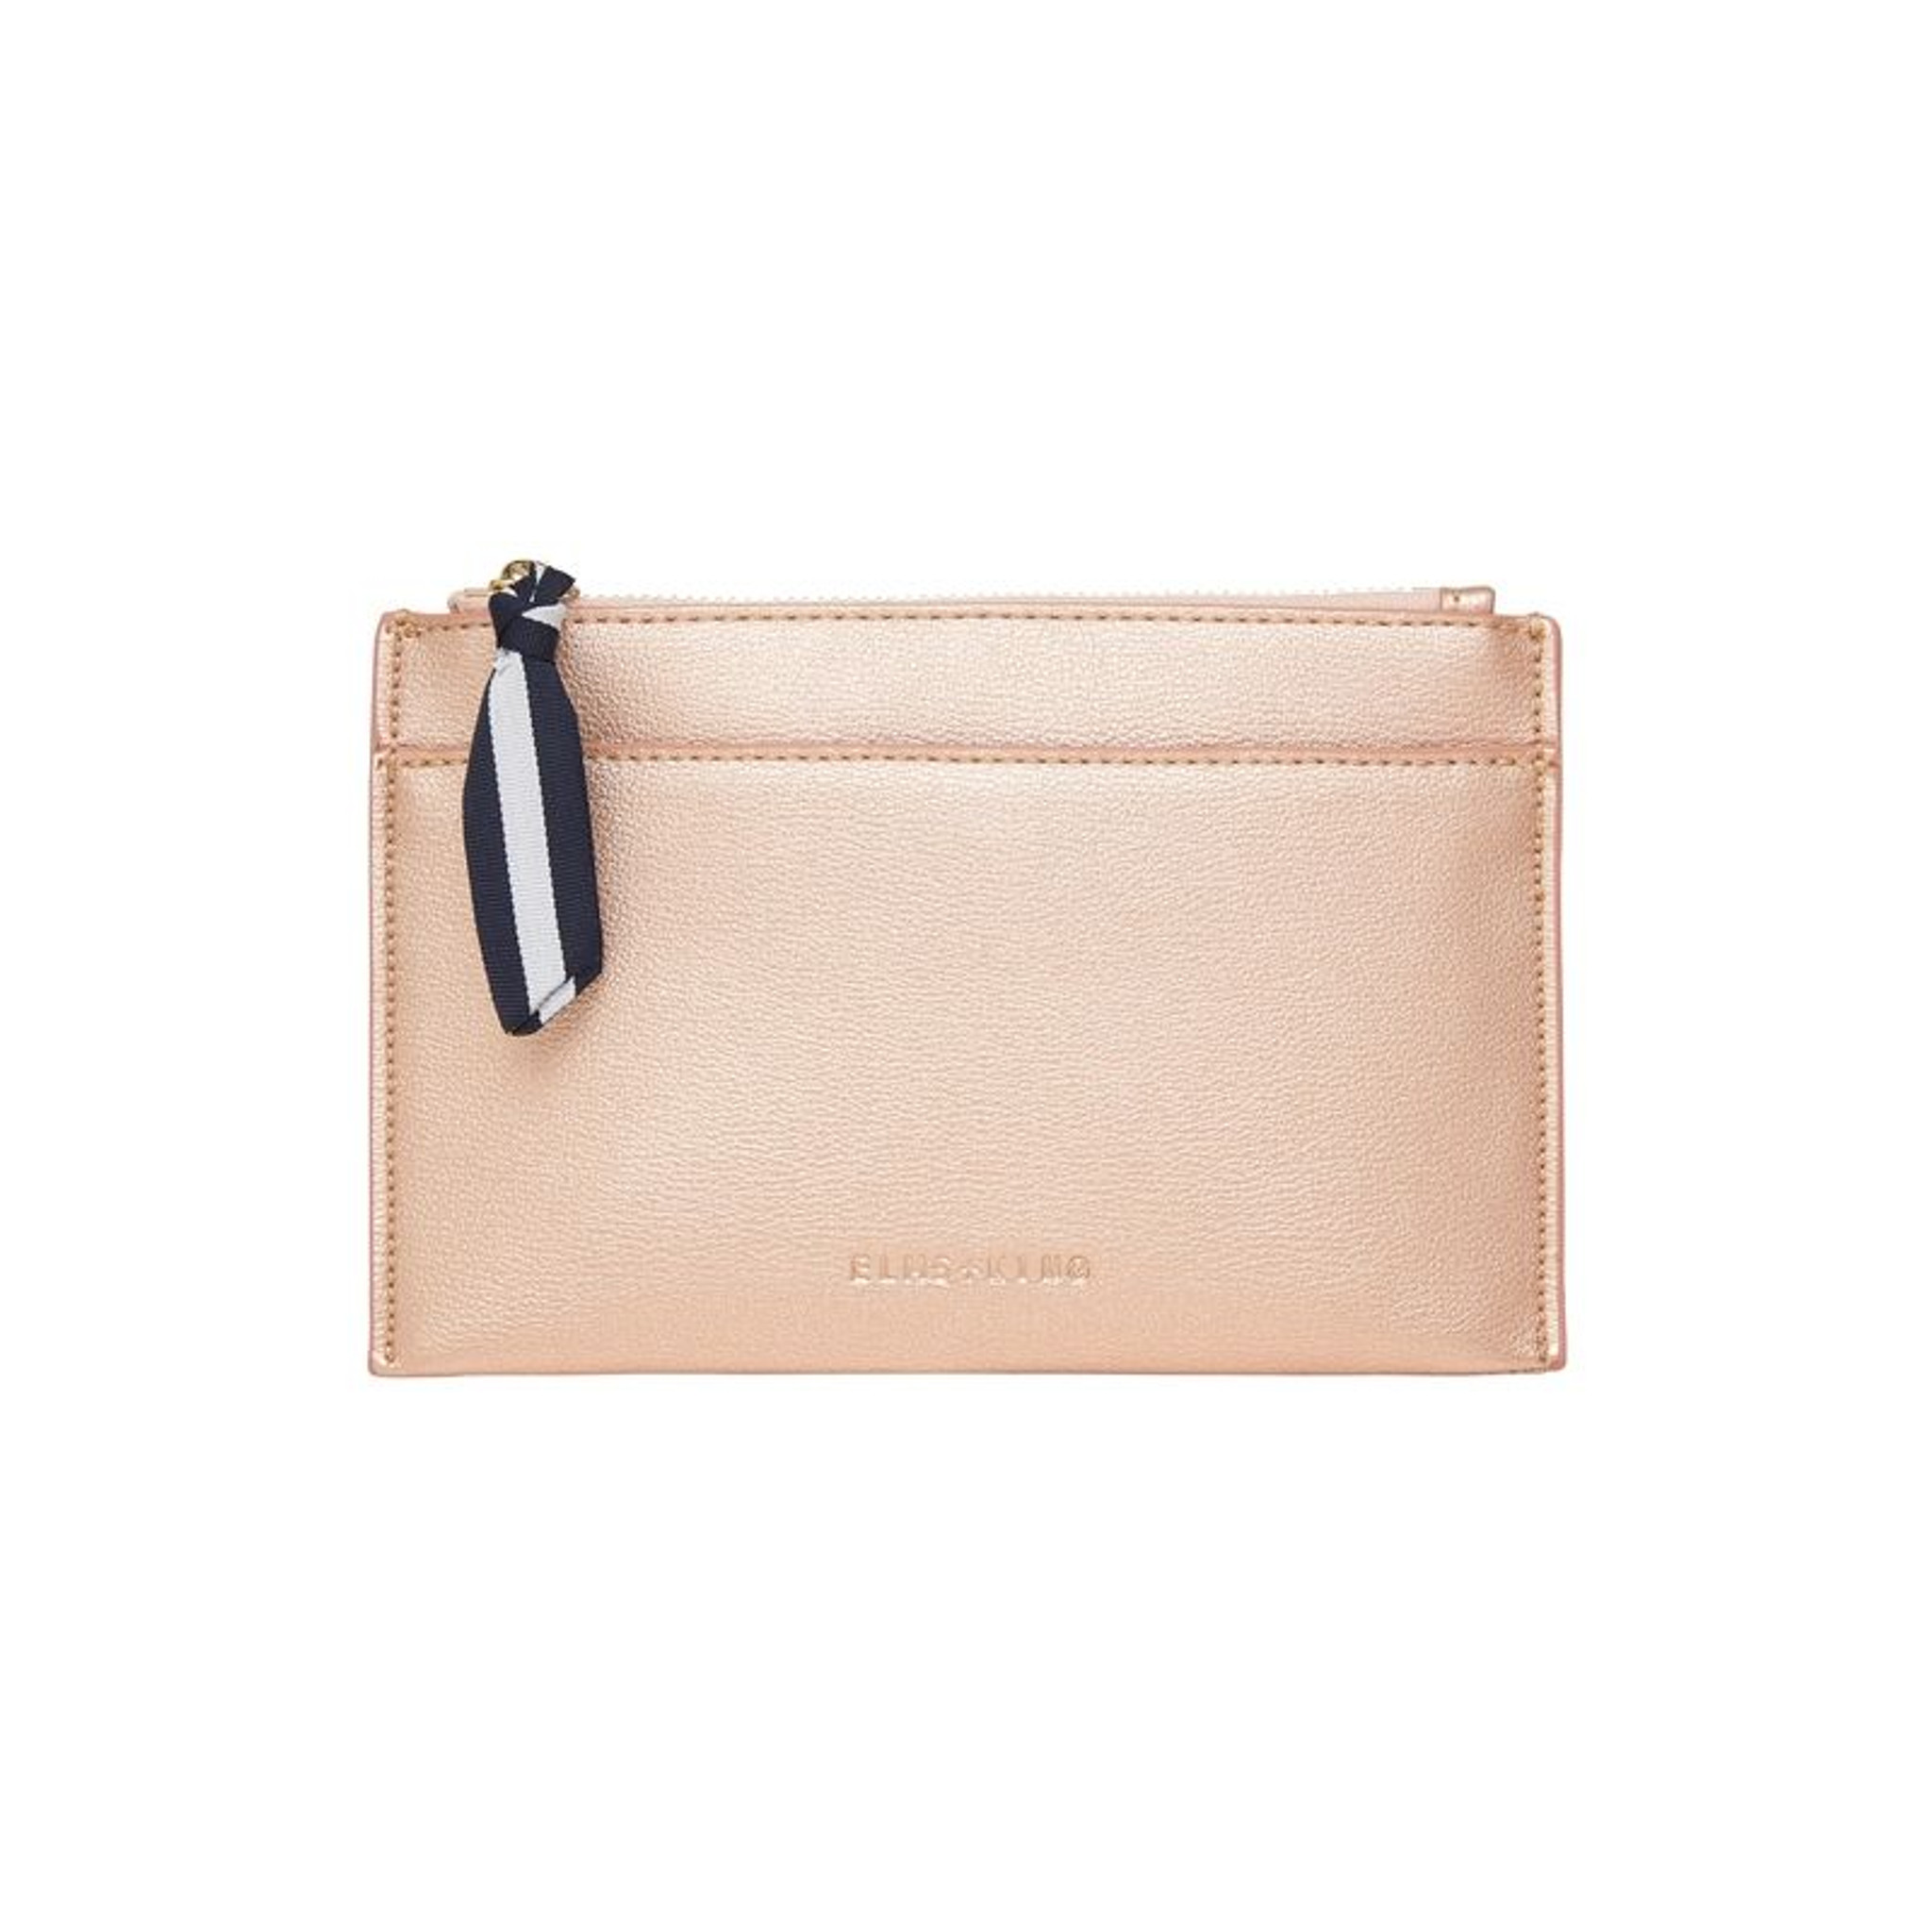 New York Coin Purse rose gold by ELMS + KING